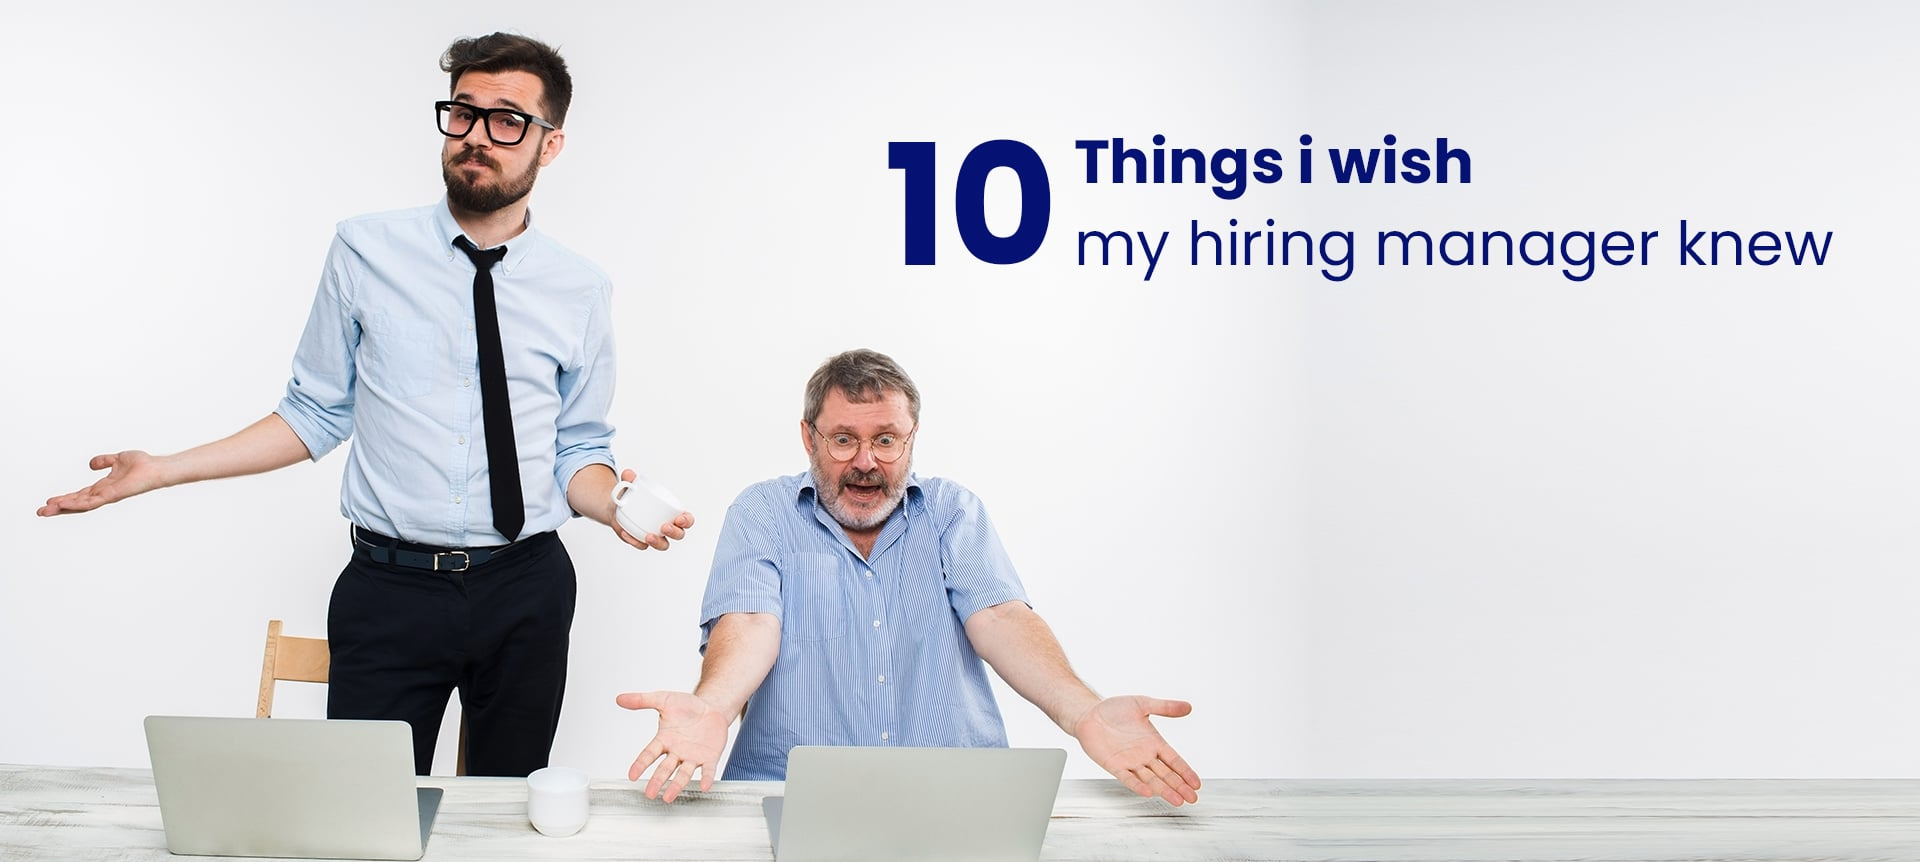 A recruiter and talent acquisition manager who appear to be struggling with their work